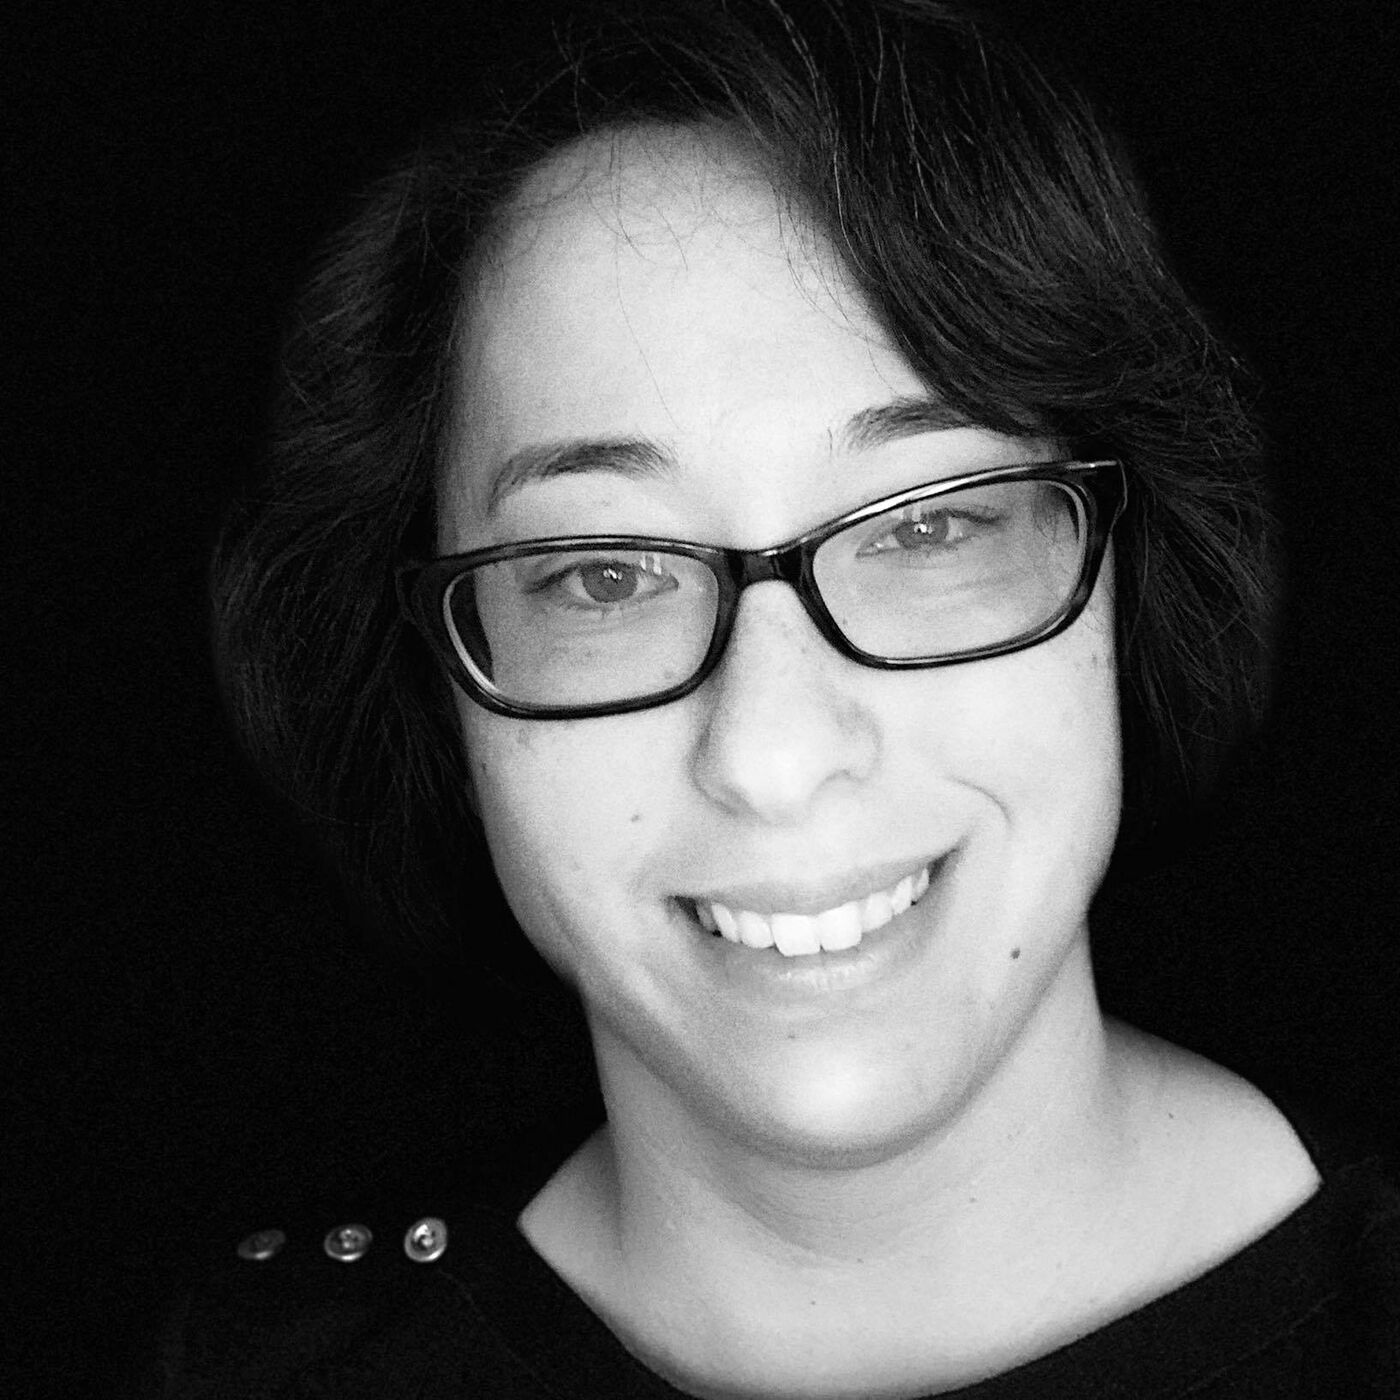 Episode 16 - A conversation with Music Therapist and fellow Podcaster Tammy Takaishi